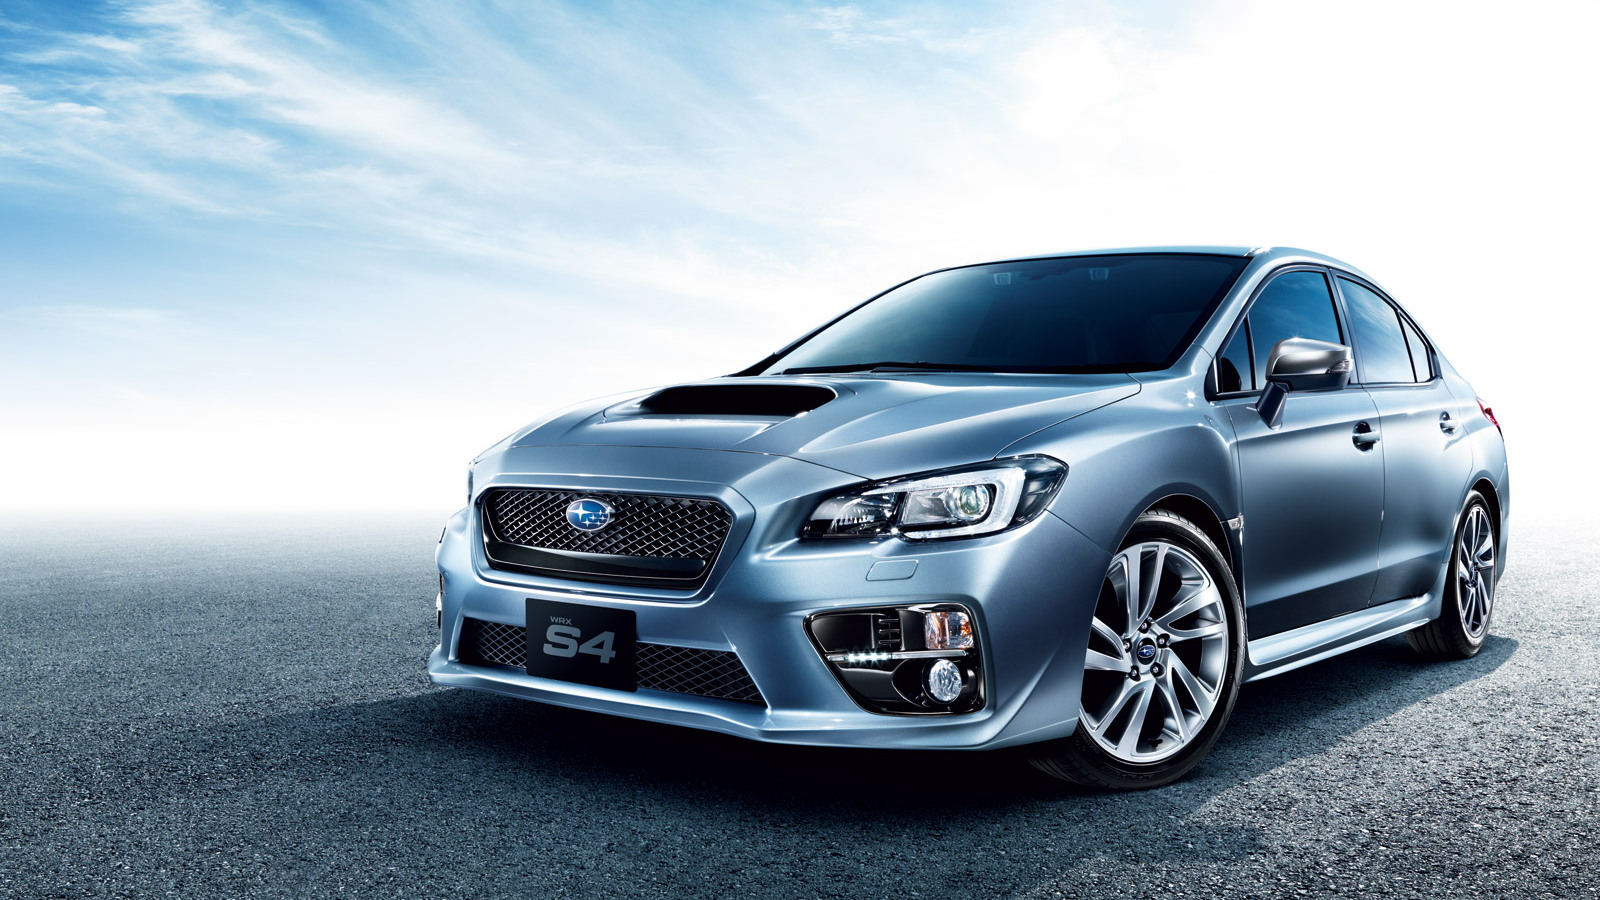 Subaru Launches Wrx S4 And Wrx Sti Type S In Japan